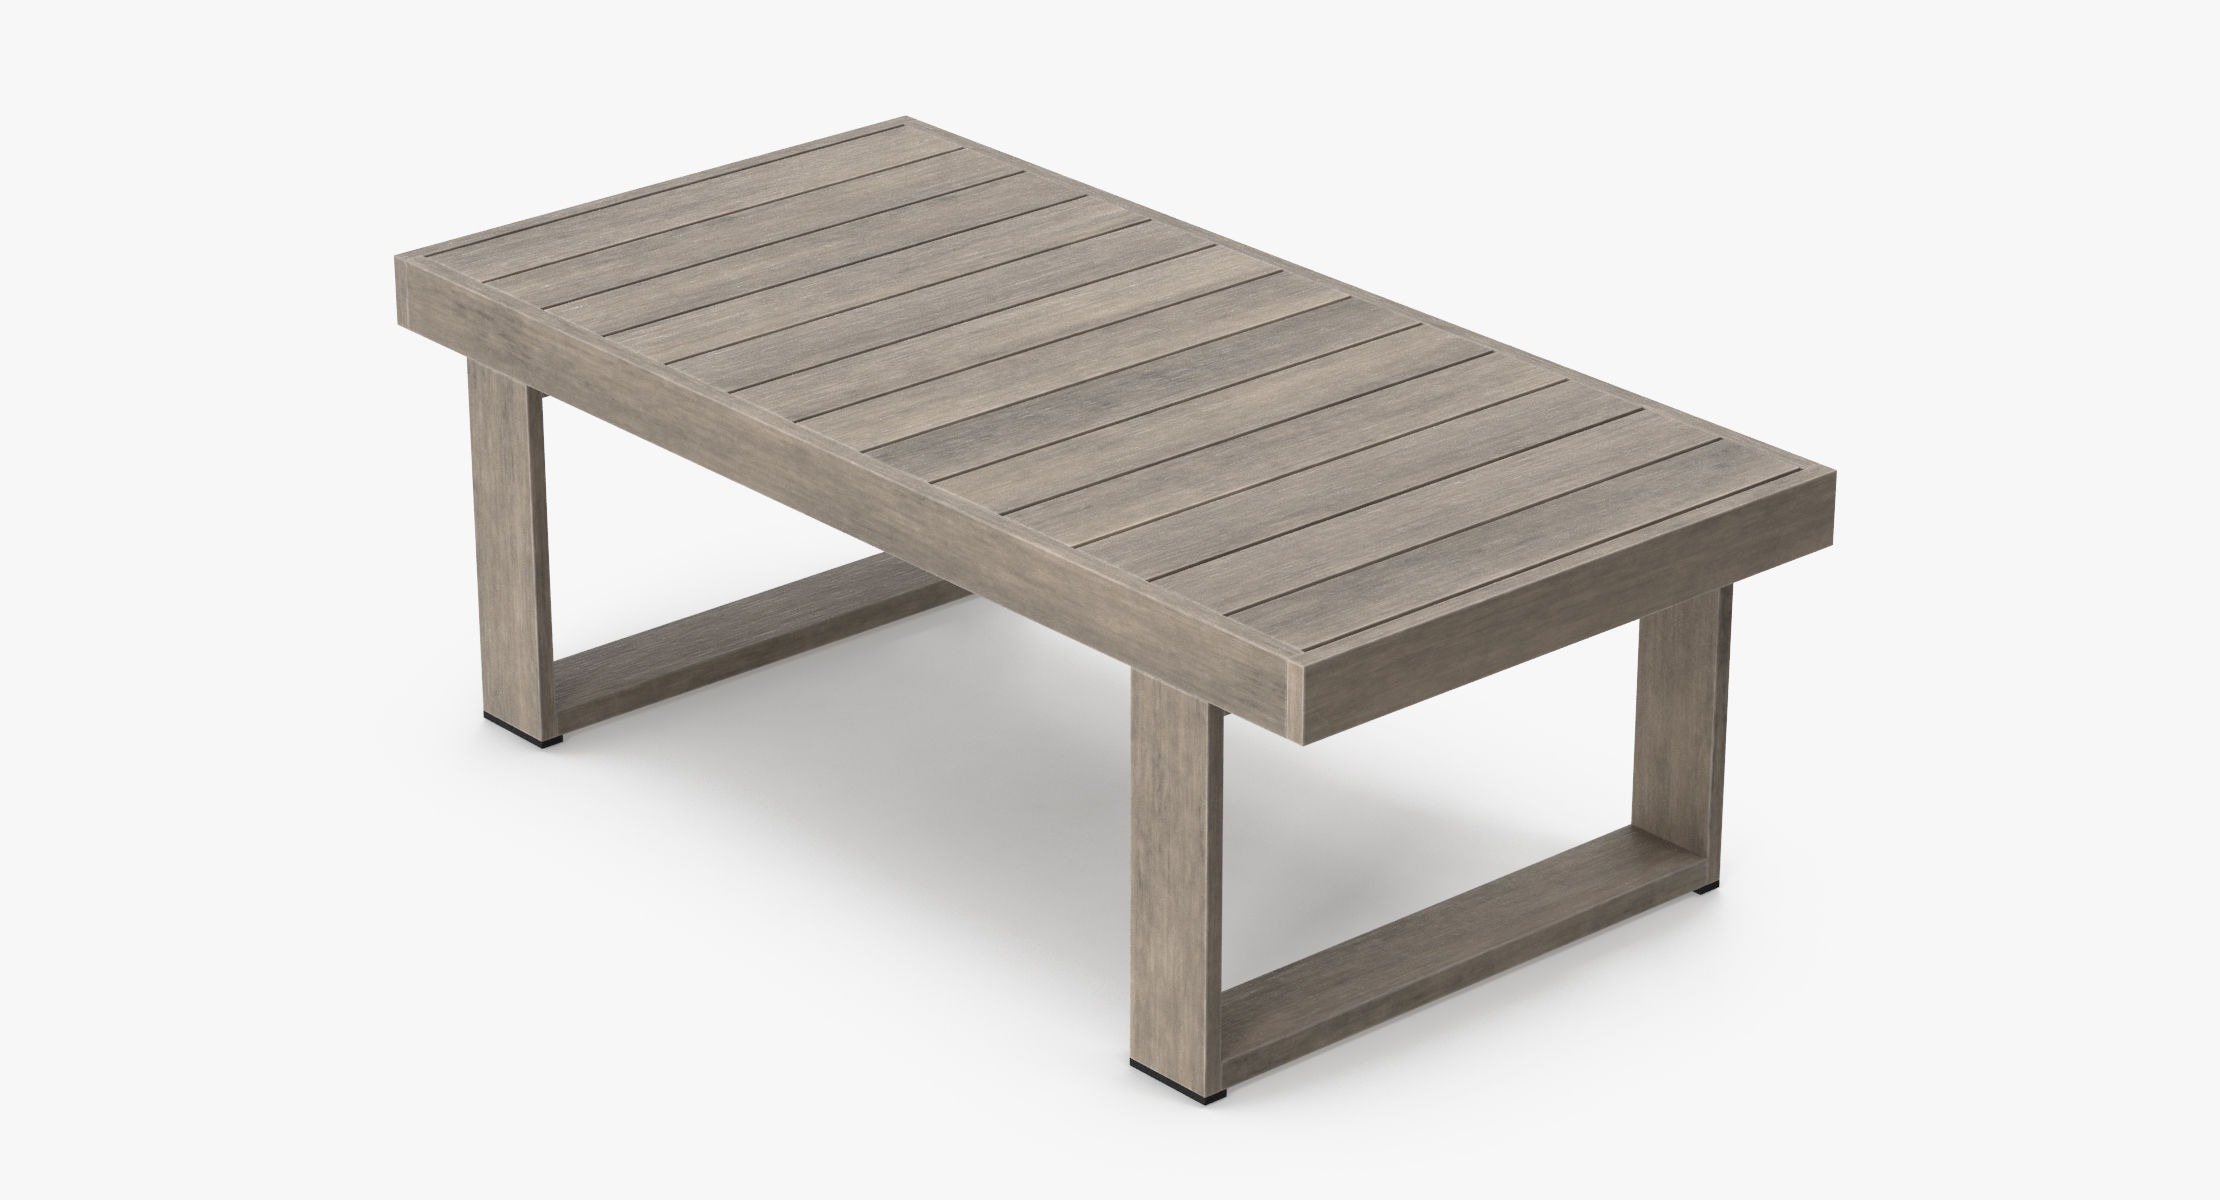 Patio Coffee Table (Square) 02 - reel 1